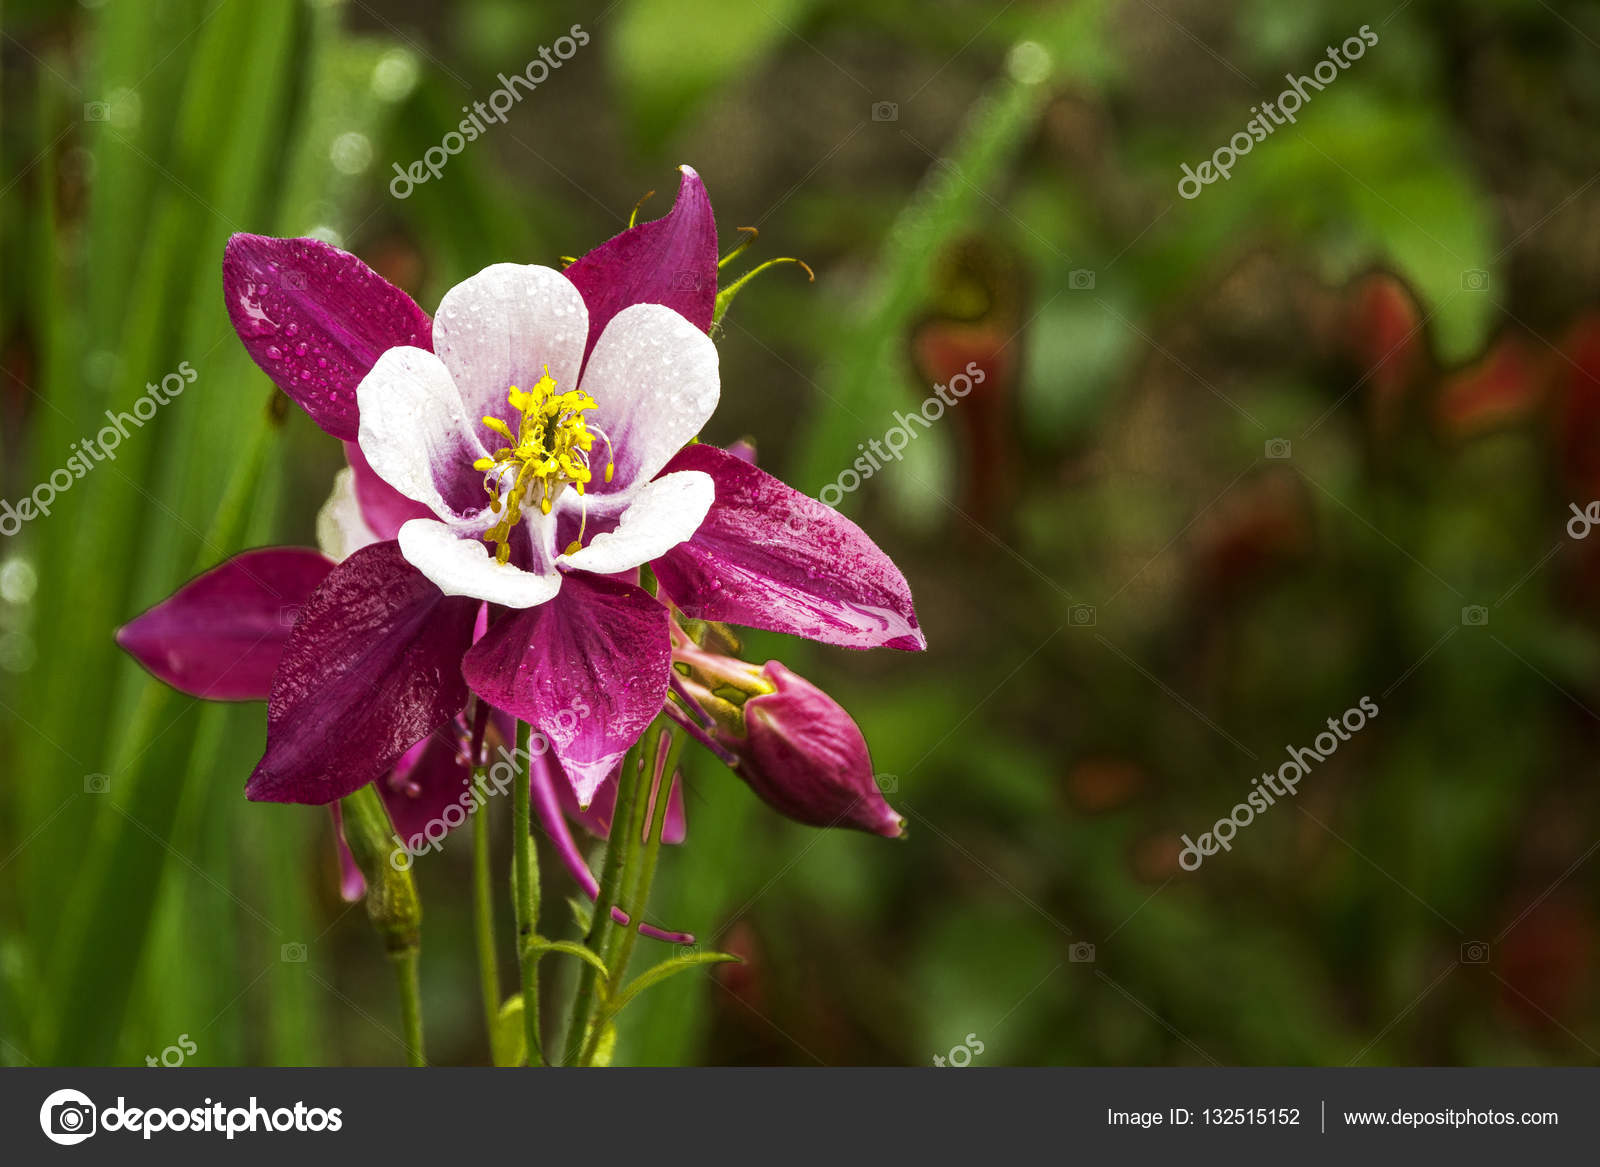 Colorful white purple and yellow aquilegia columbine flower stock colorful white purple and yellow aquilegia columbine flower stock photo izmirmasajfo